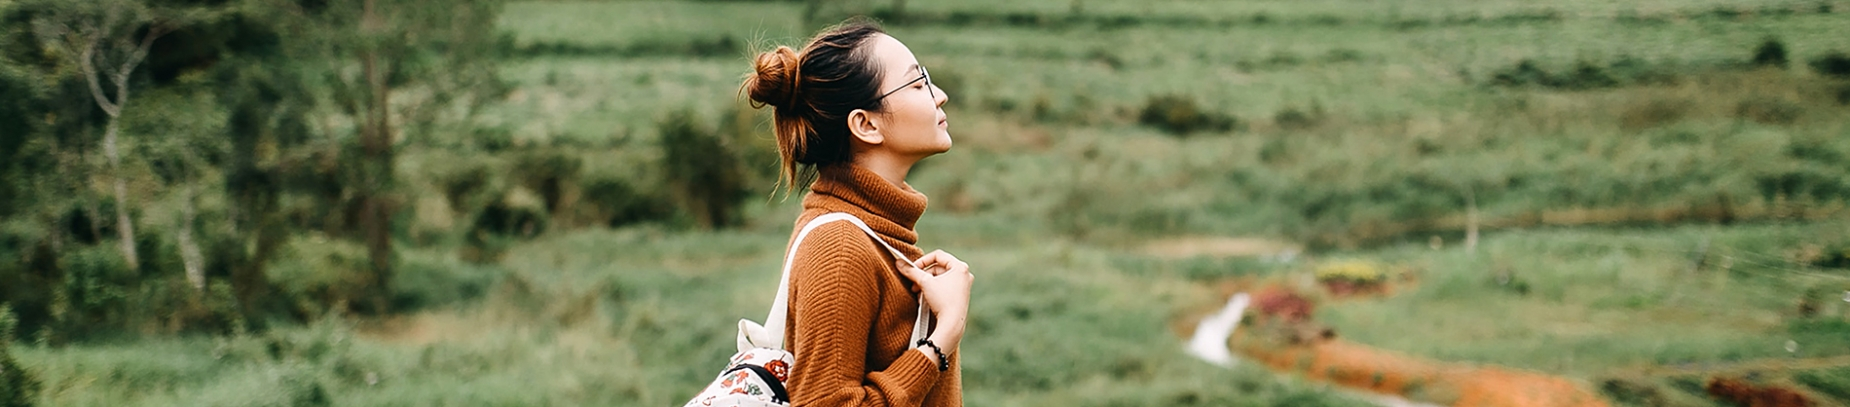 A women with a backpack stood in a field with her eyes closed